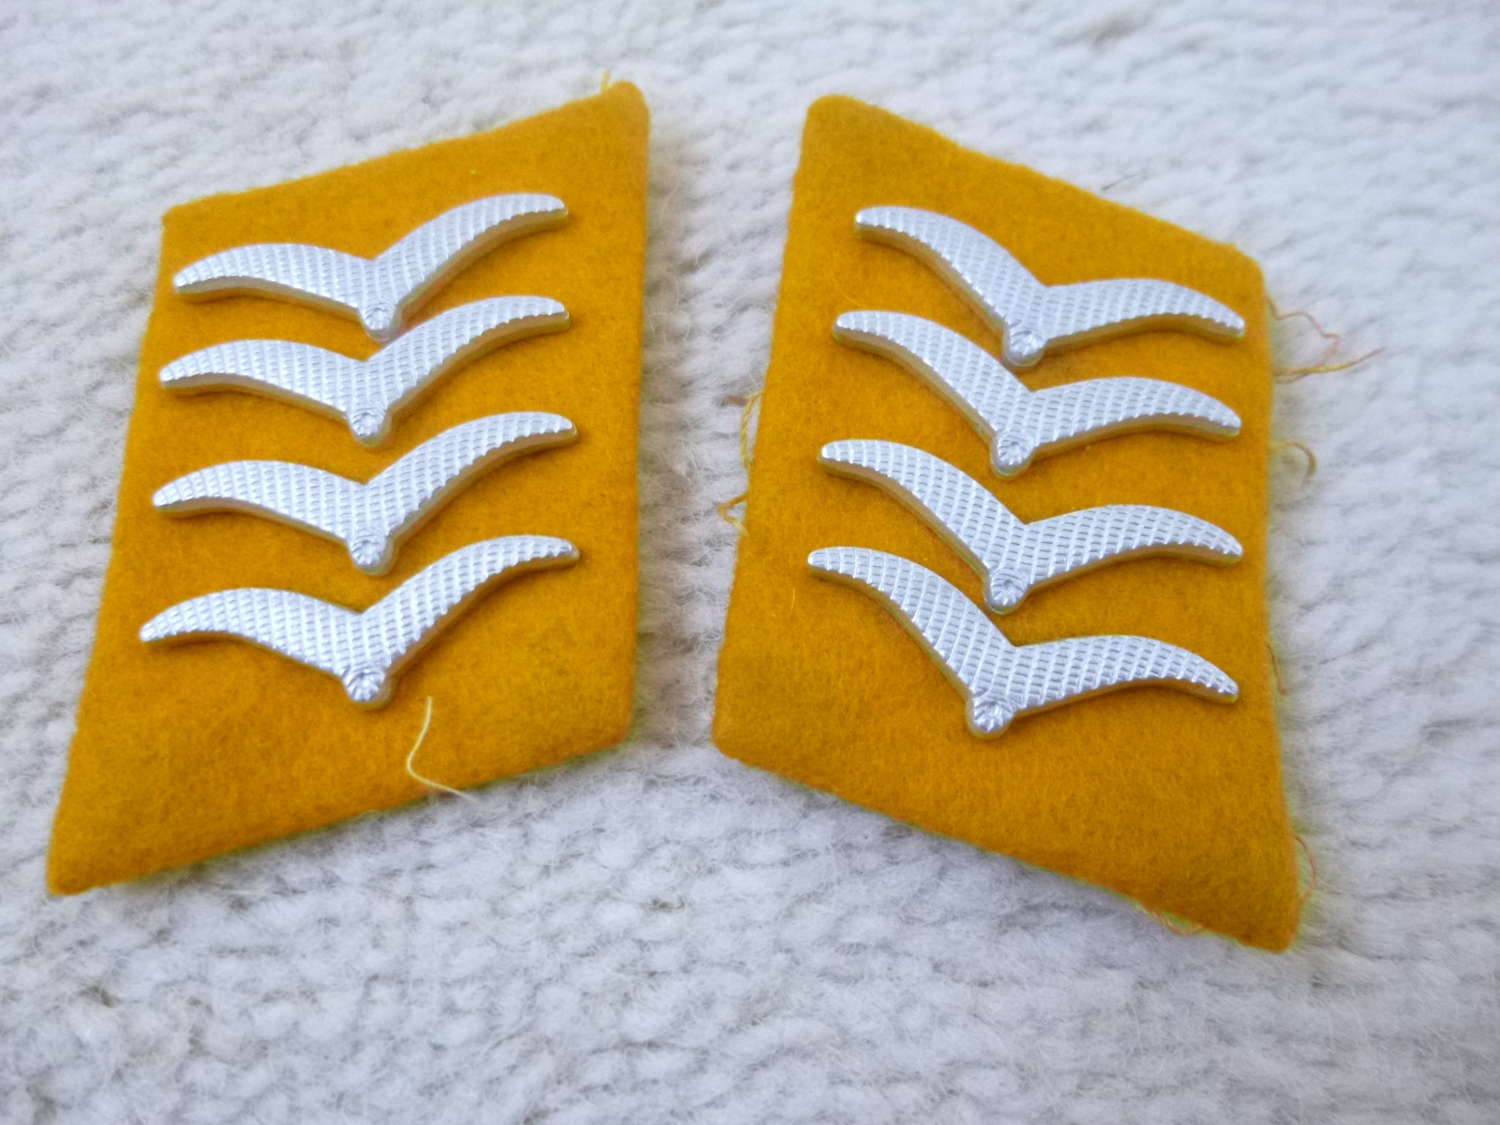 German Luftwaffe Hauptgefreiter collar patches